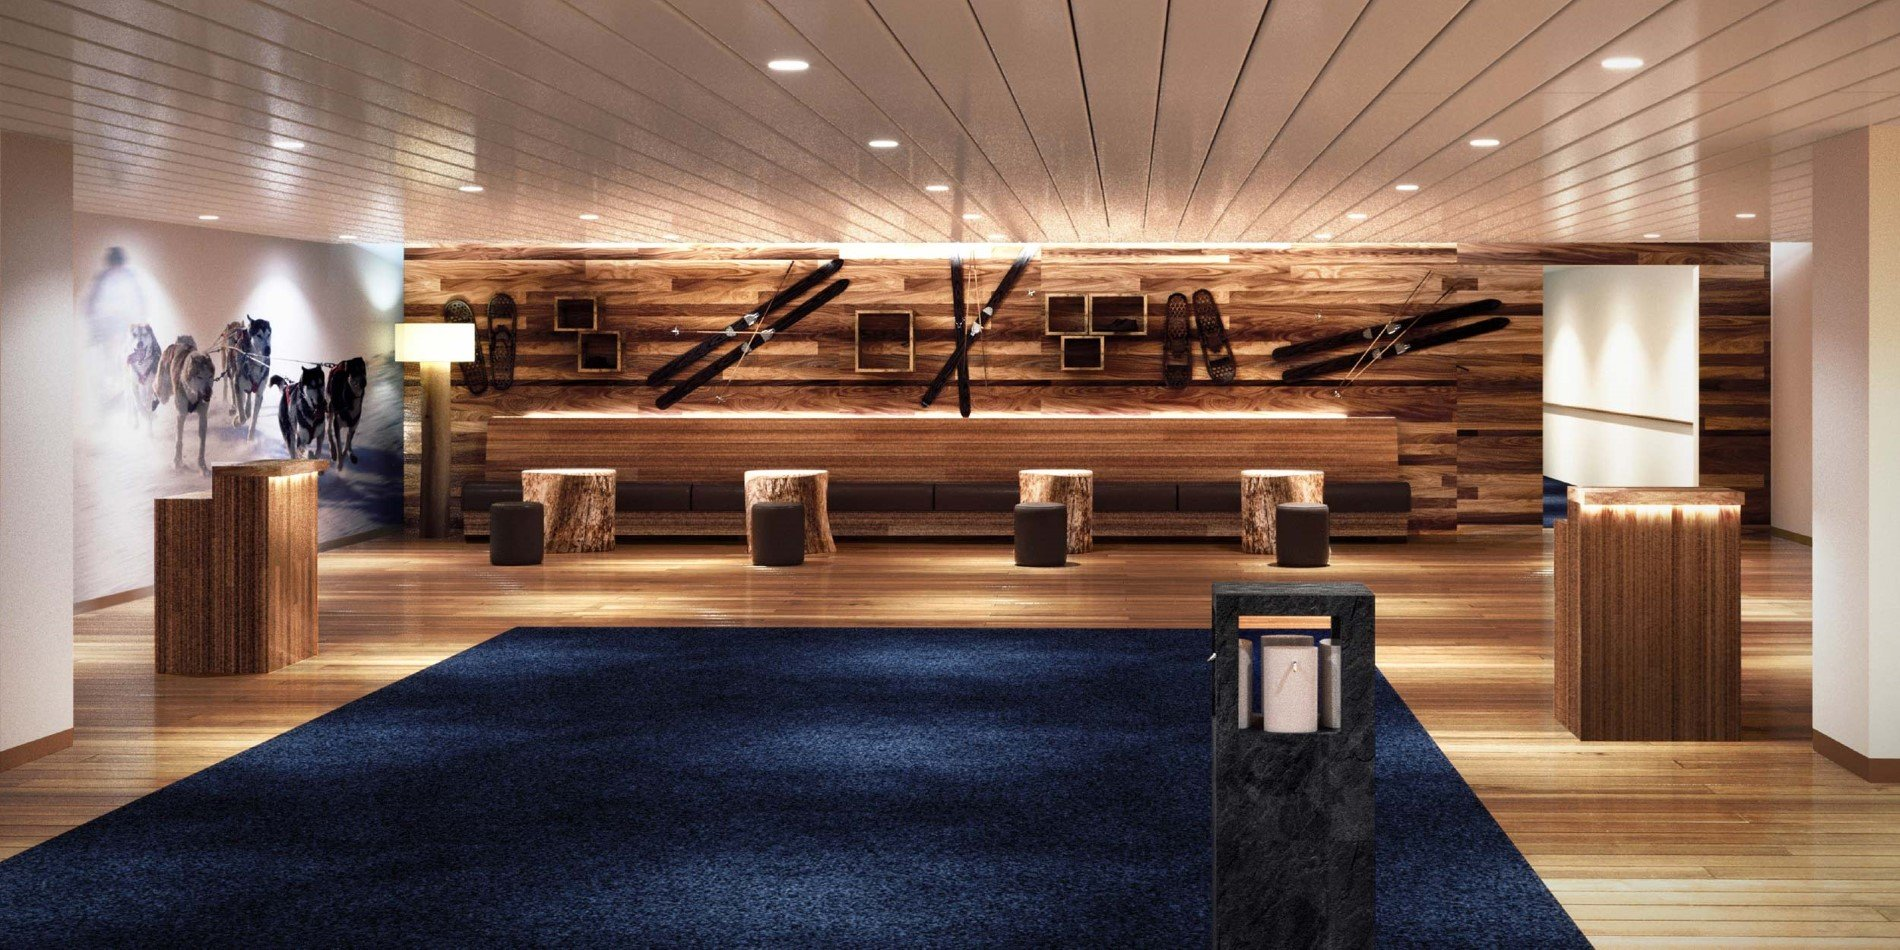 Refurbished Hurtigruten vestibule or lobby entrance